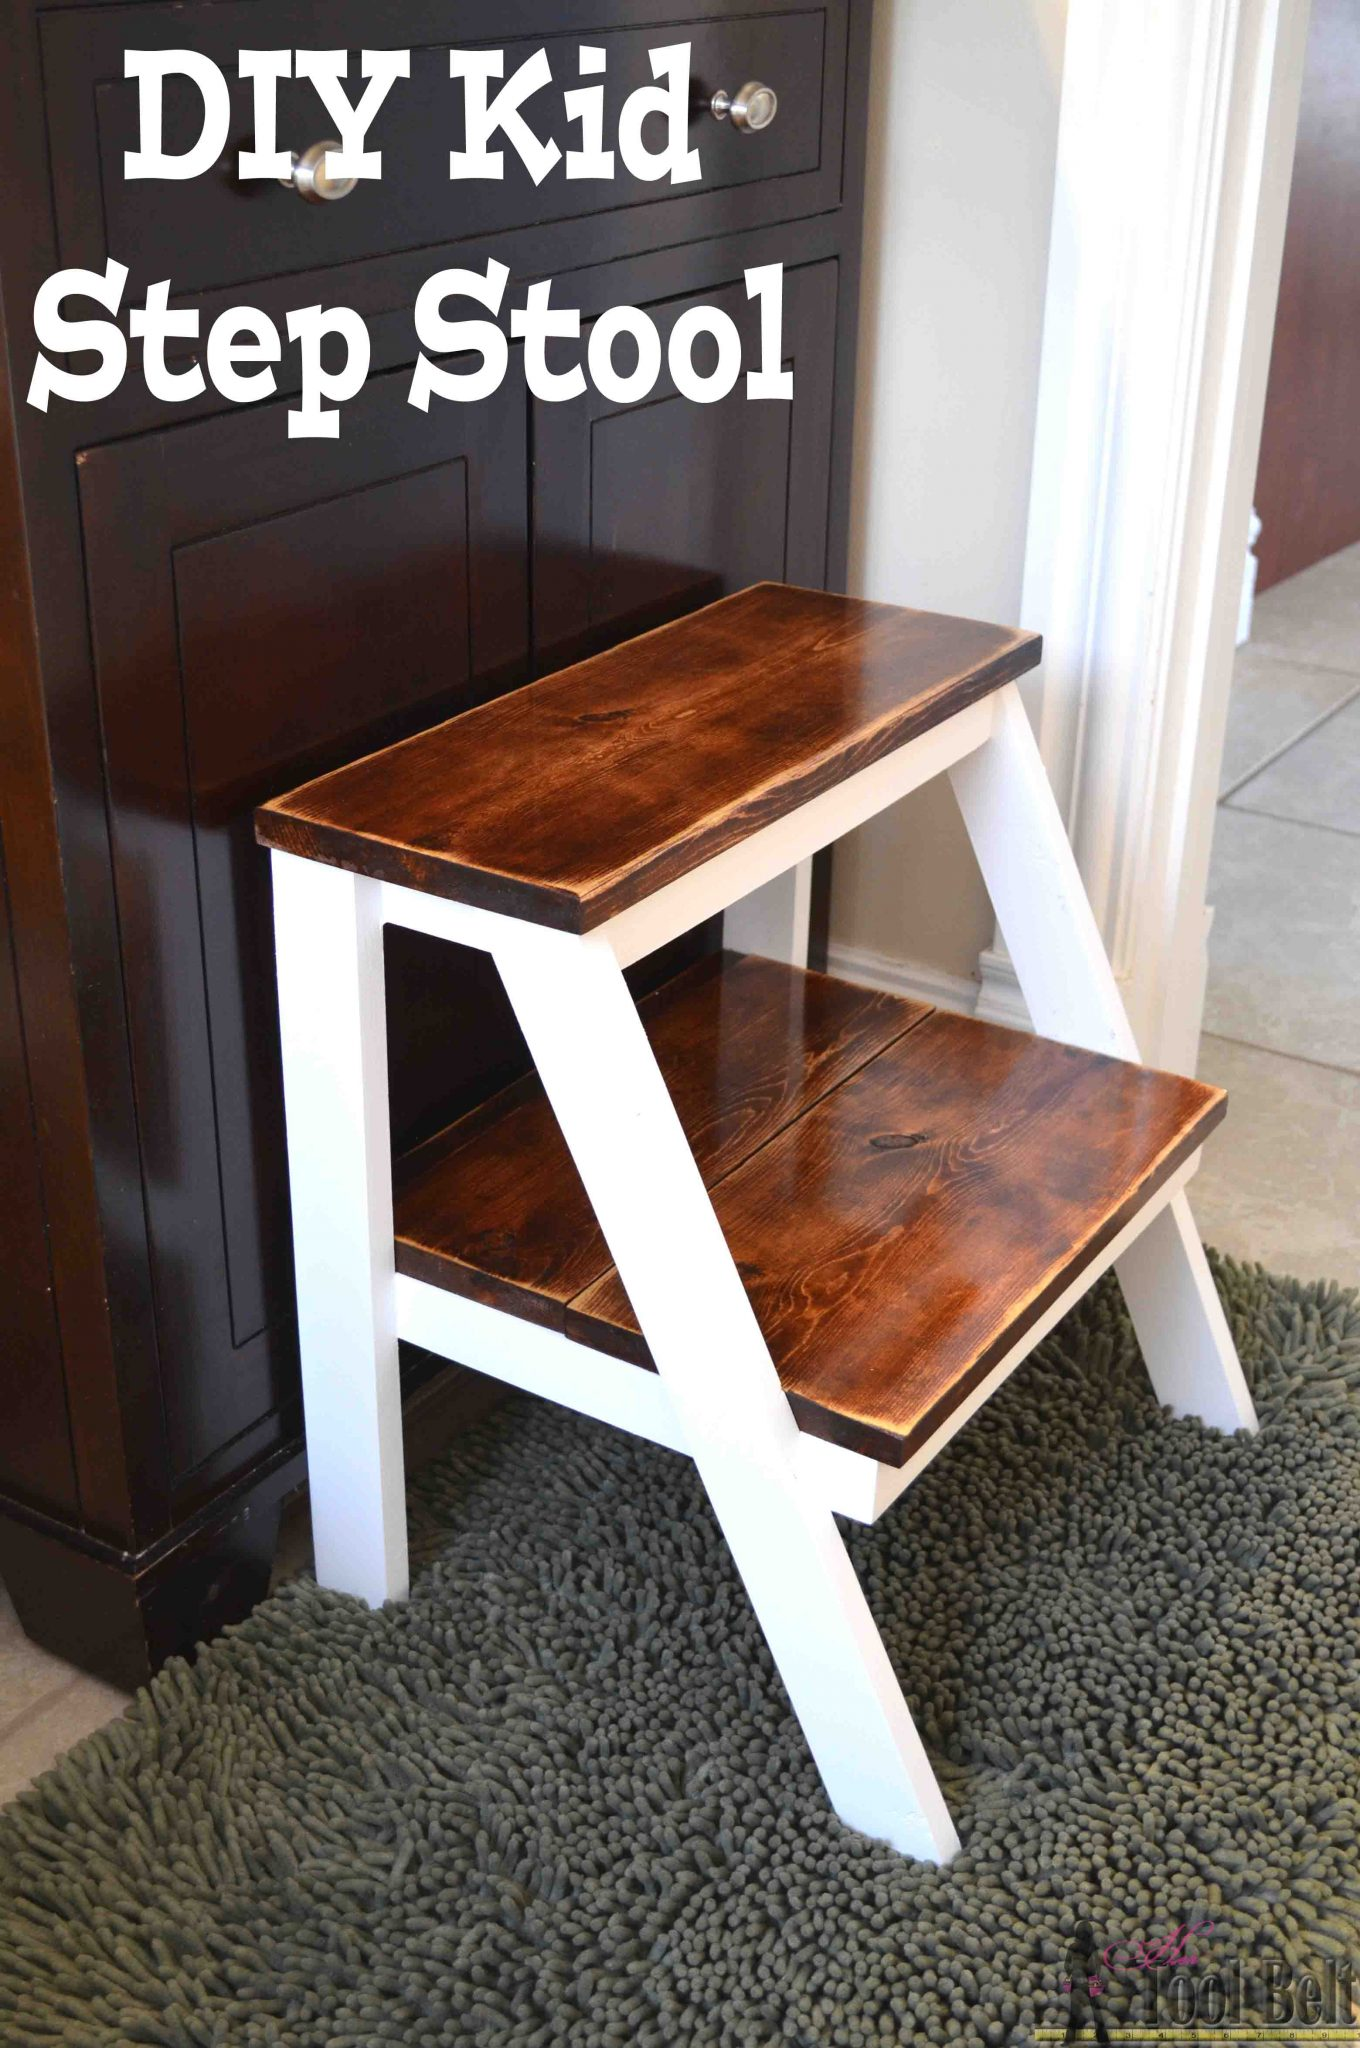 Remarkable Kids Step Stool Her Tool Belt Gmtry Best Dining Table And Chair Ideas Images Gmtryco